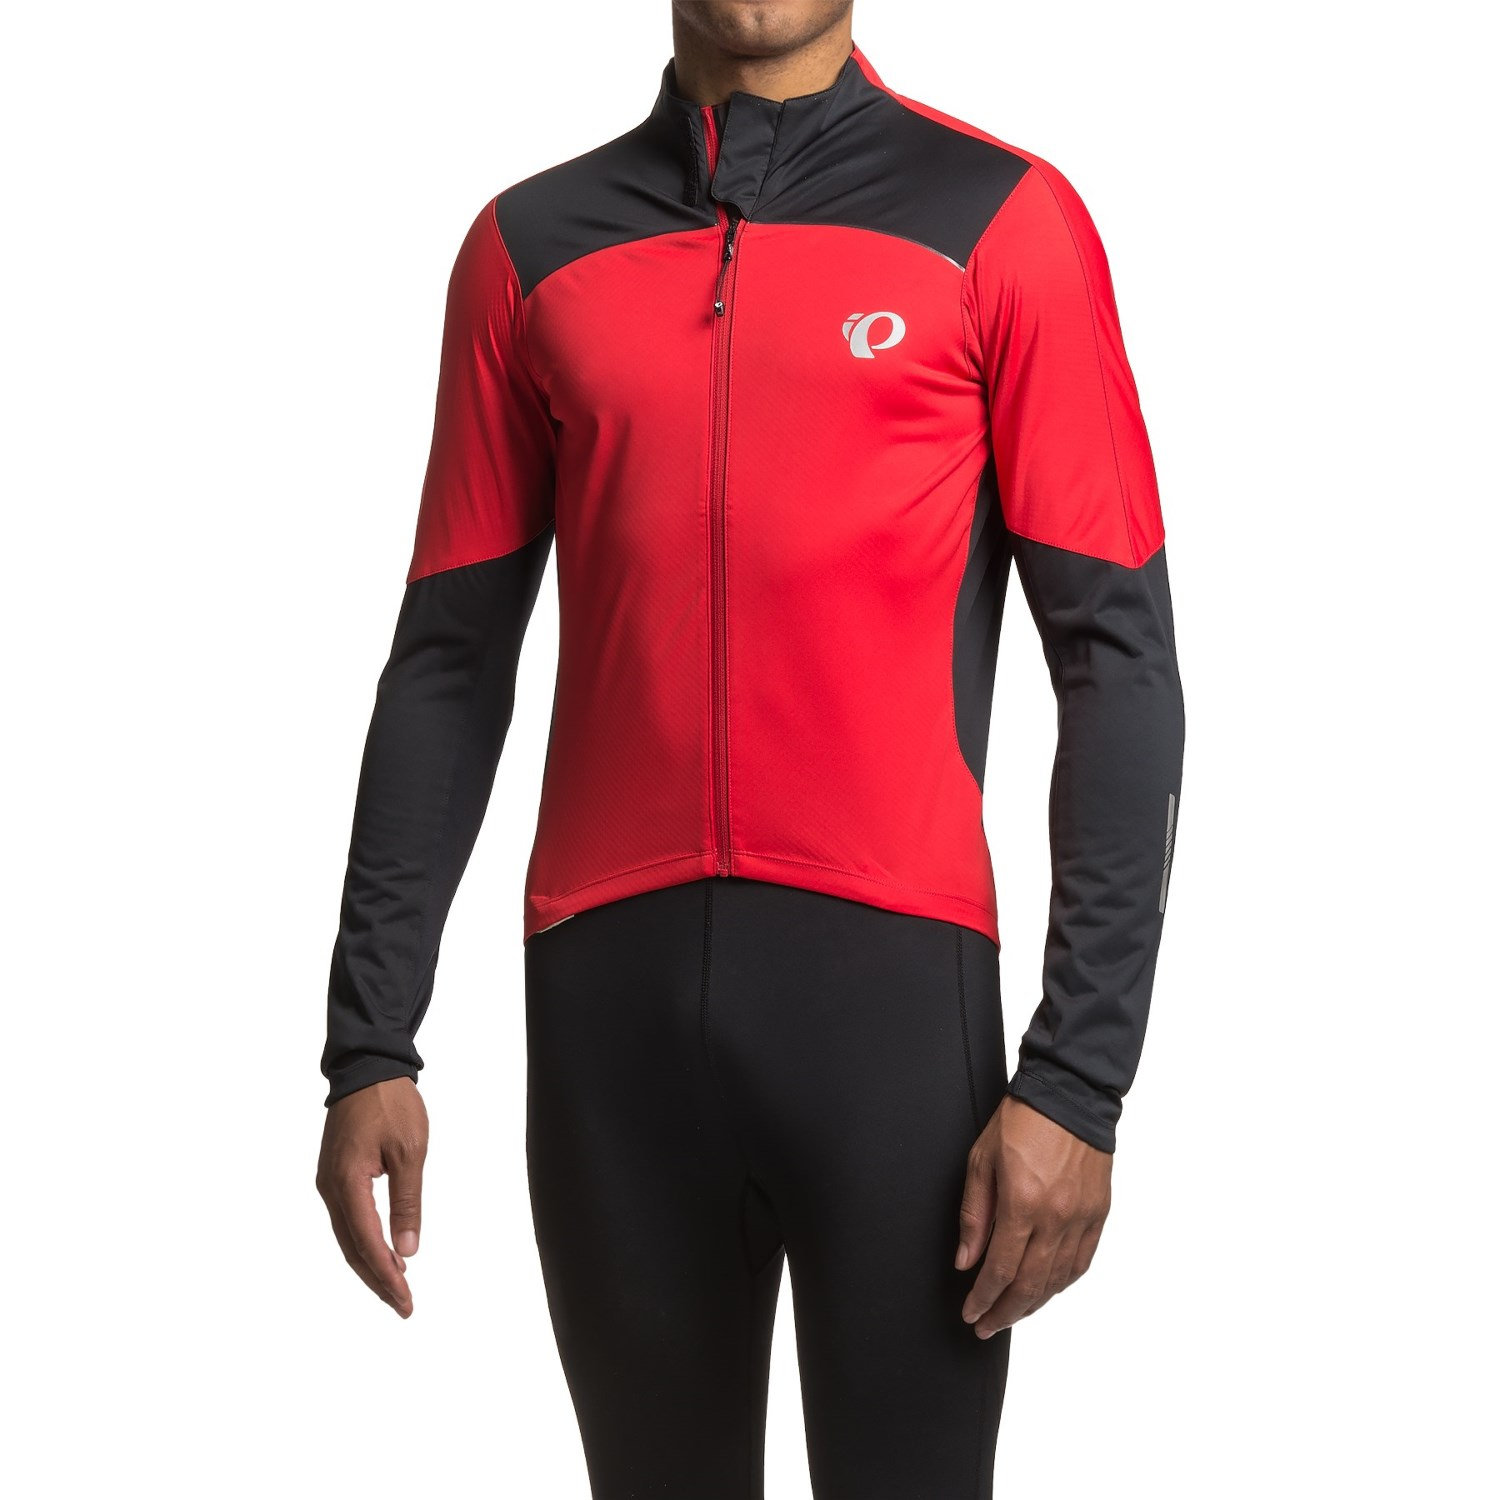 Pearl Izumi Pro Pursuit Wind Cycling Jersey For Men Save 50